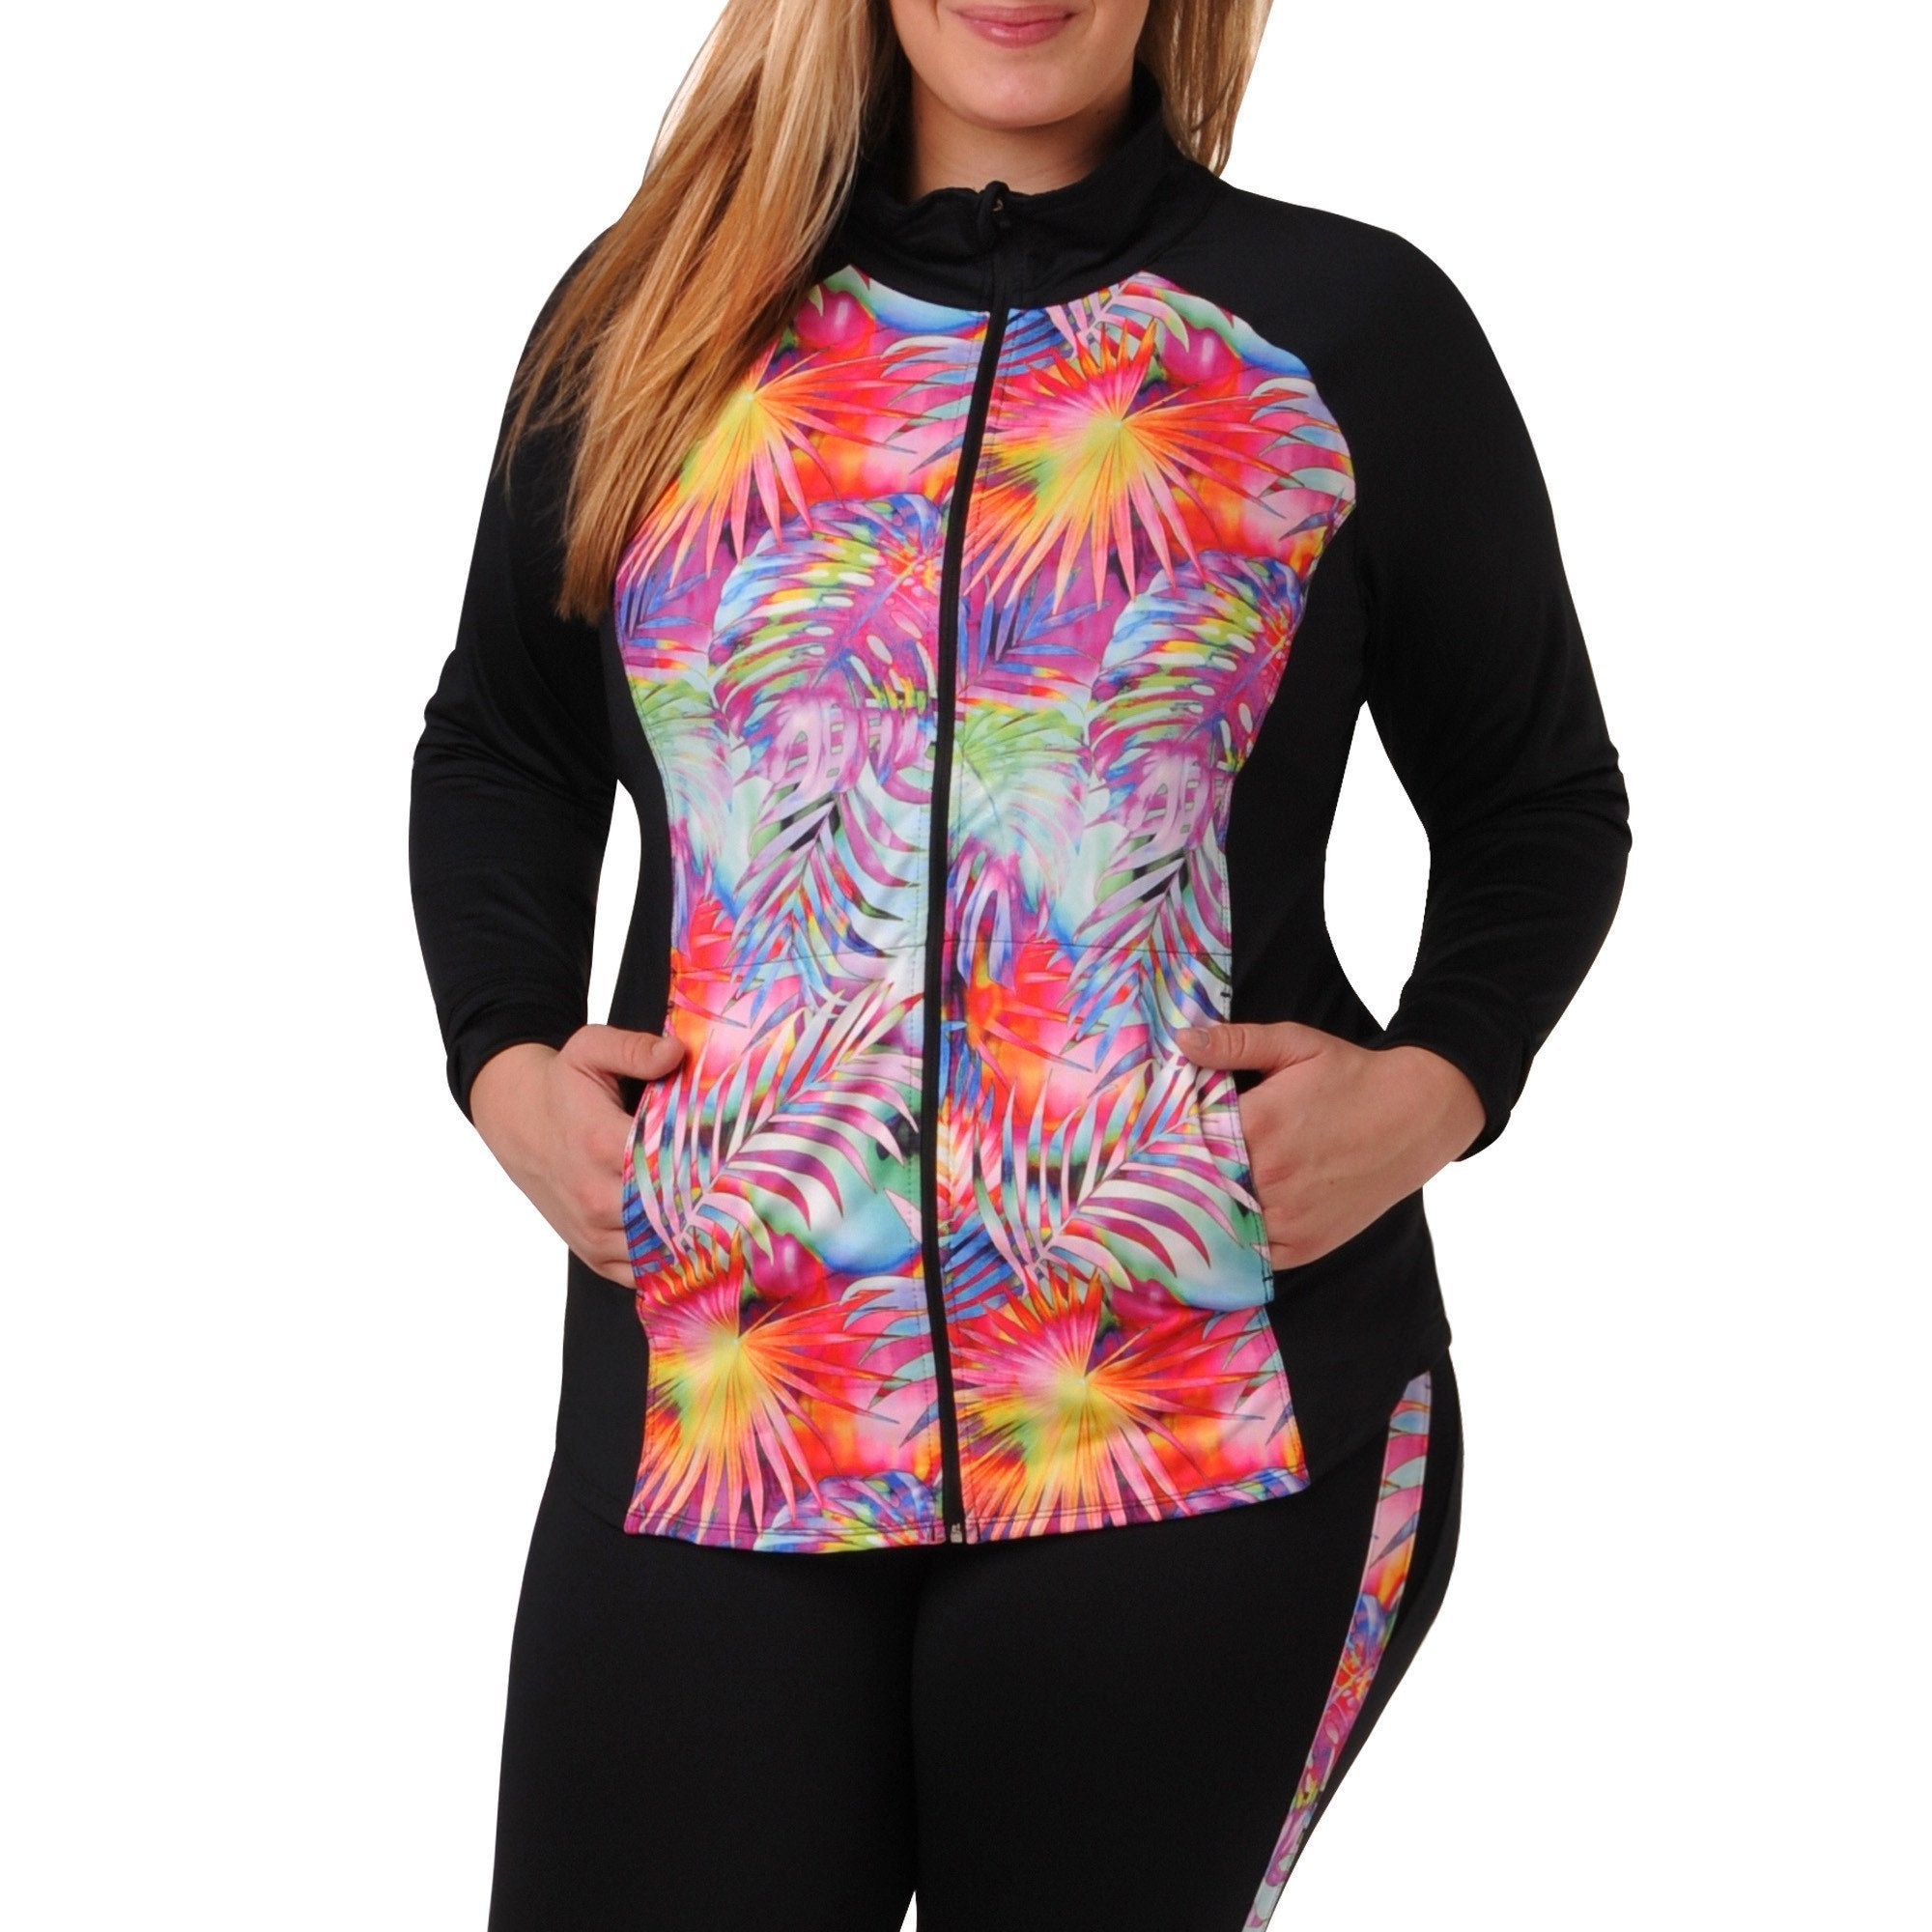 Daria Print Jacket - Rainbeau Curves, 14/16 / Tropical Print, activewear, athleisure, fitness, workout, gym, performance, womens, ladies, plus size, curvy, full figured, spandex, cotton, polyester - 1